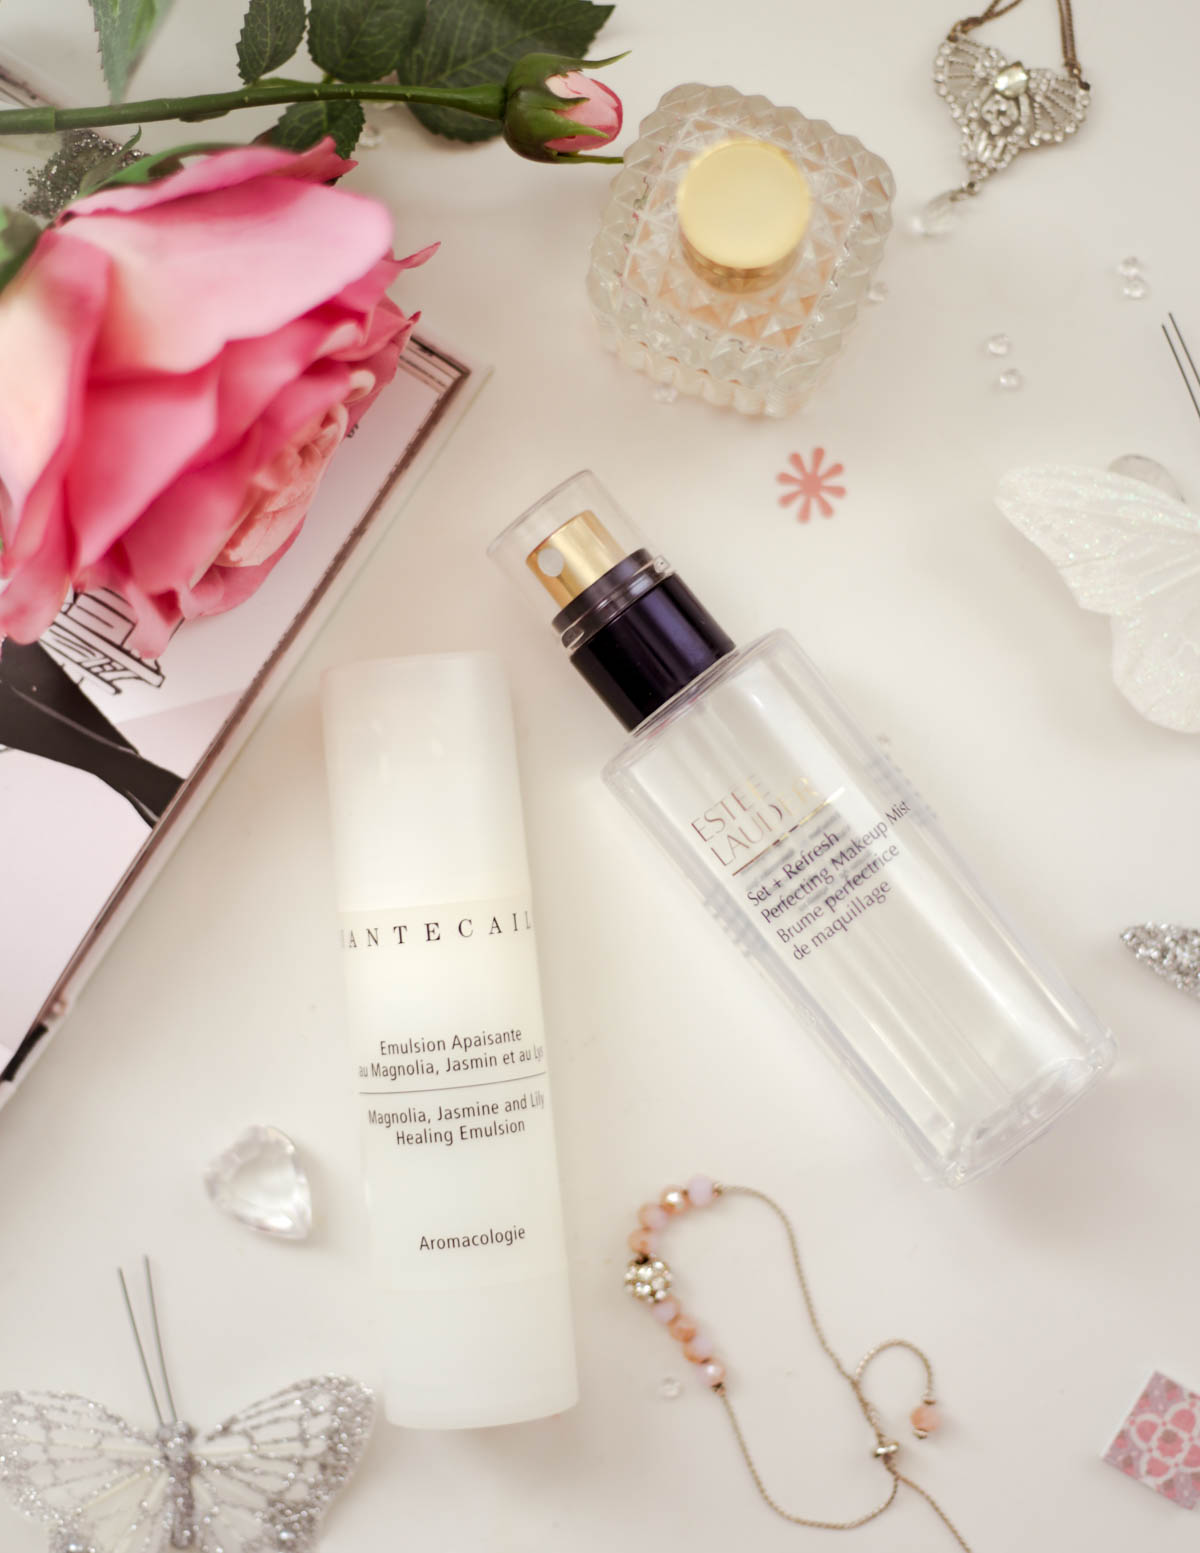 A-skincare-combo-that-will-keep-your-skin-hydrated-all-day-feat-Chantecaille-Magnolia-Jasmine-Lily-Healing-Emulsion-and-Estee-Lauder-Perfecting-Makeup-Mist-with-rose-and-book